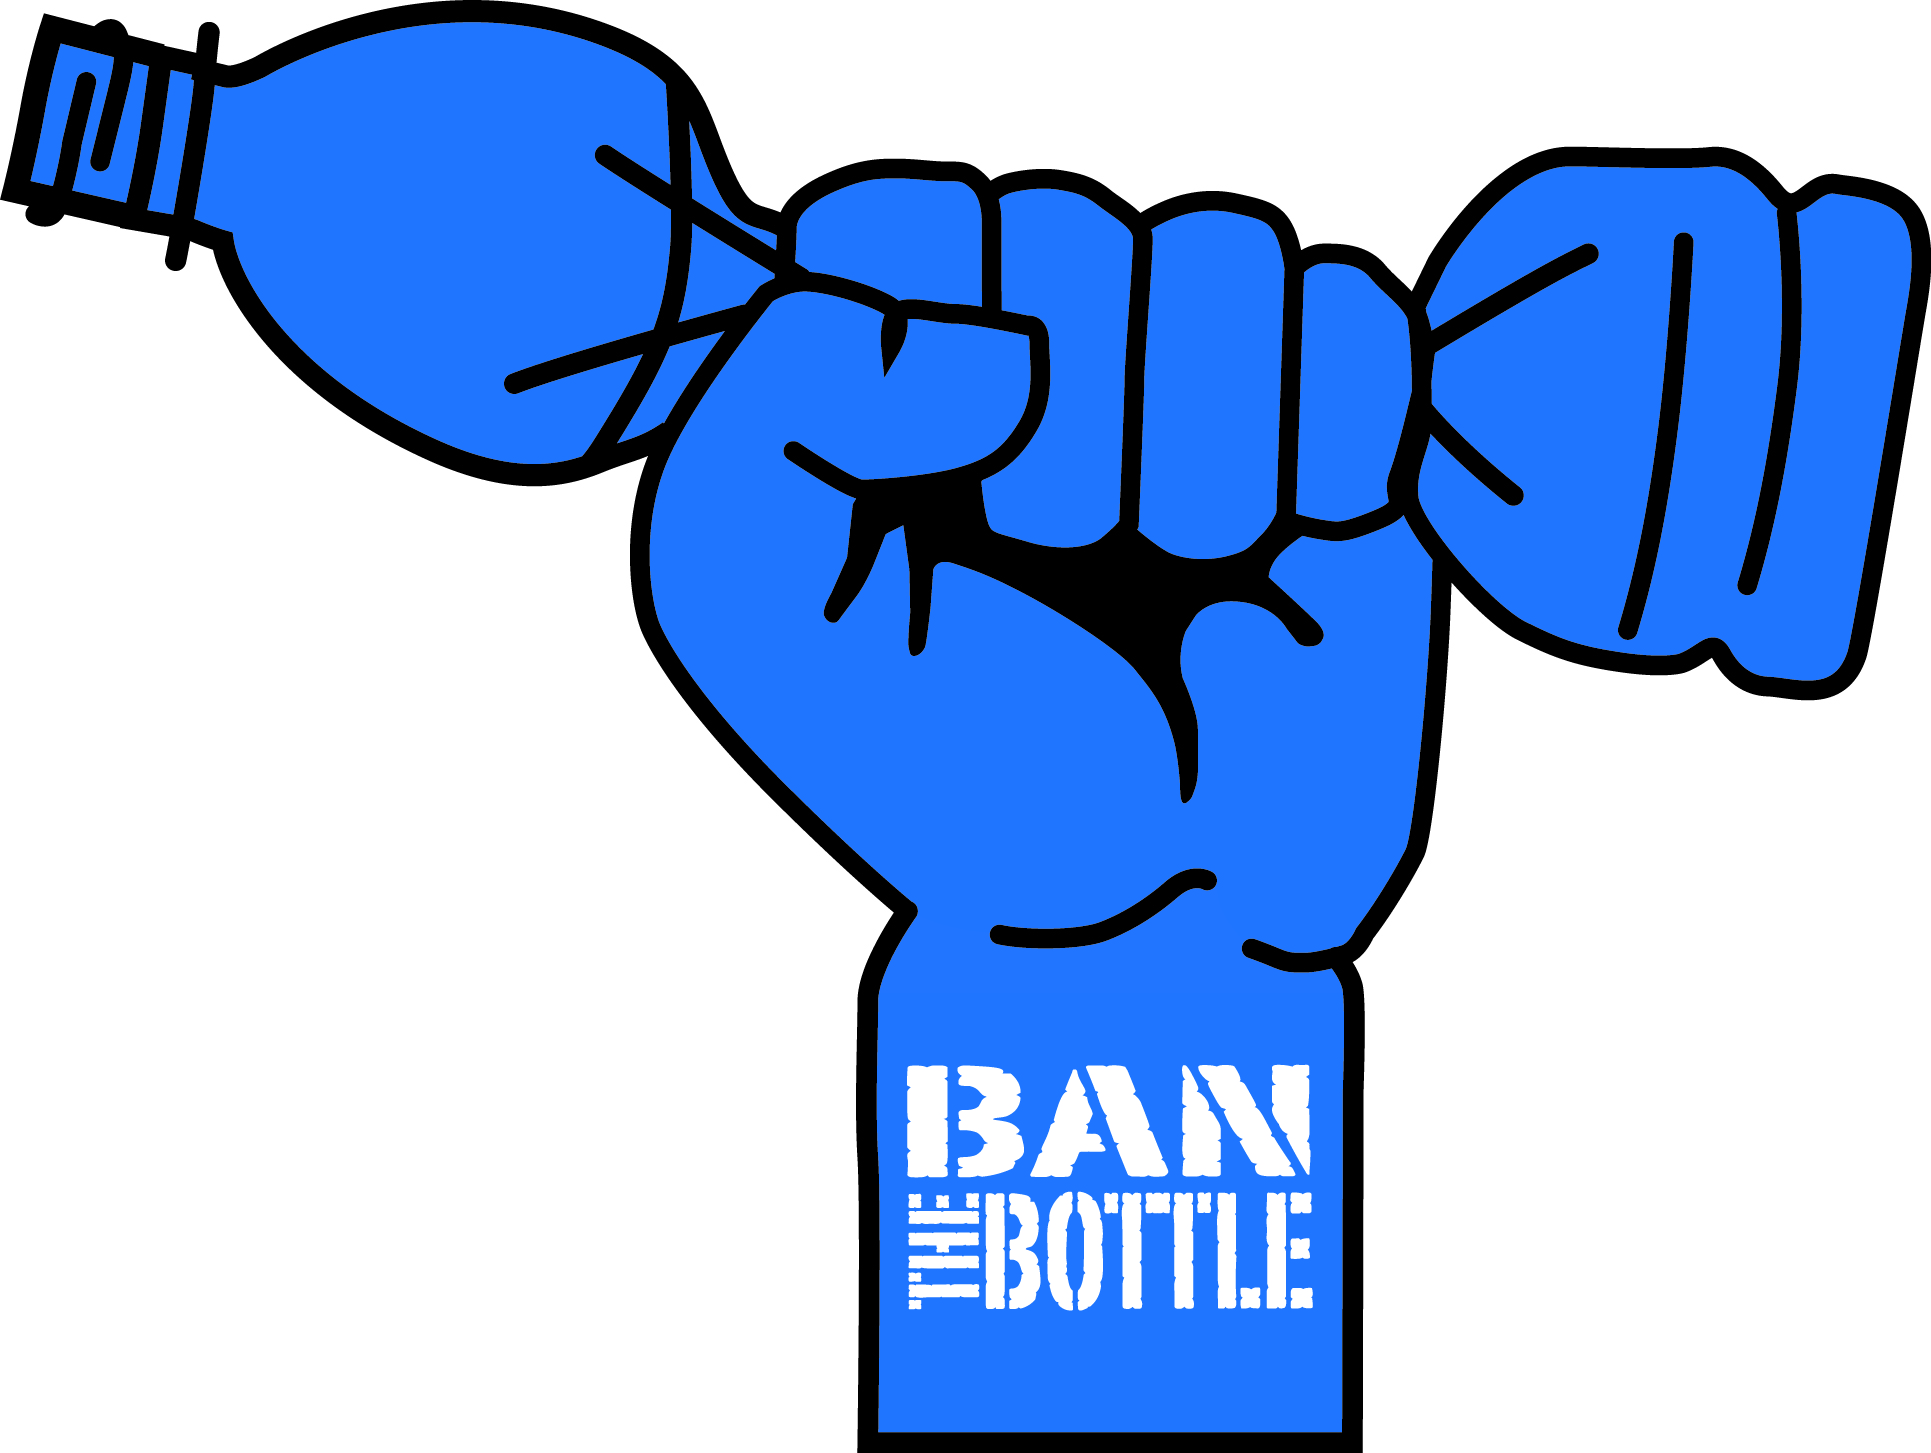 ban plastic or not Ban the bottle is an organization promoting the environment by advocating bans on one-time-use plastic water bottles we believe that tap water tastes great and by eliminating plastic bottles in schools, offices and public areas, we can eliminate unneeded waste in landfills.